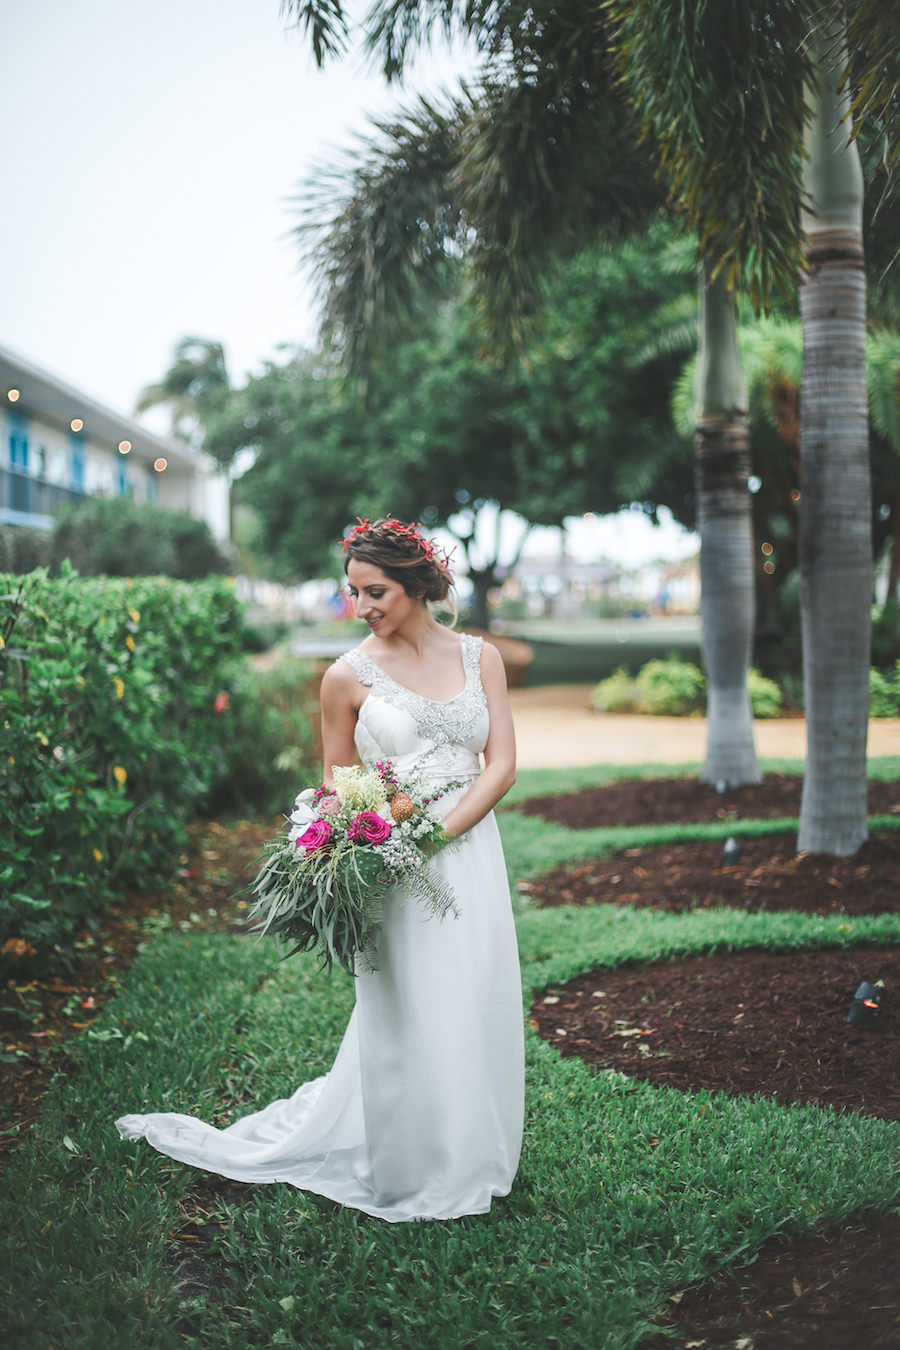 Outdoor, Bridal Wedding Portrait in Ivory, Beaded Wedding Dress and Green and Pink Floral Wedding Bouquet